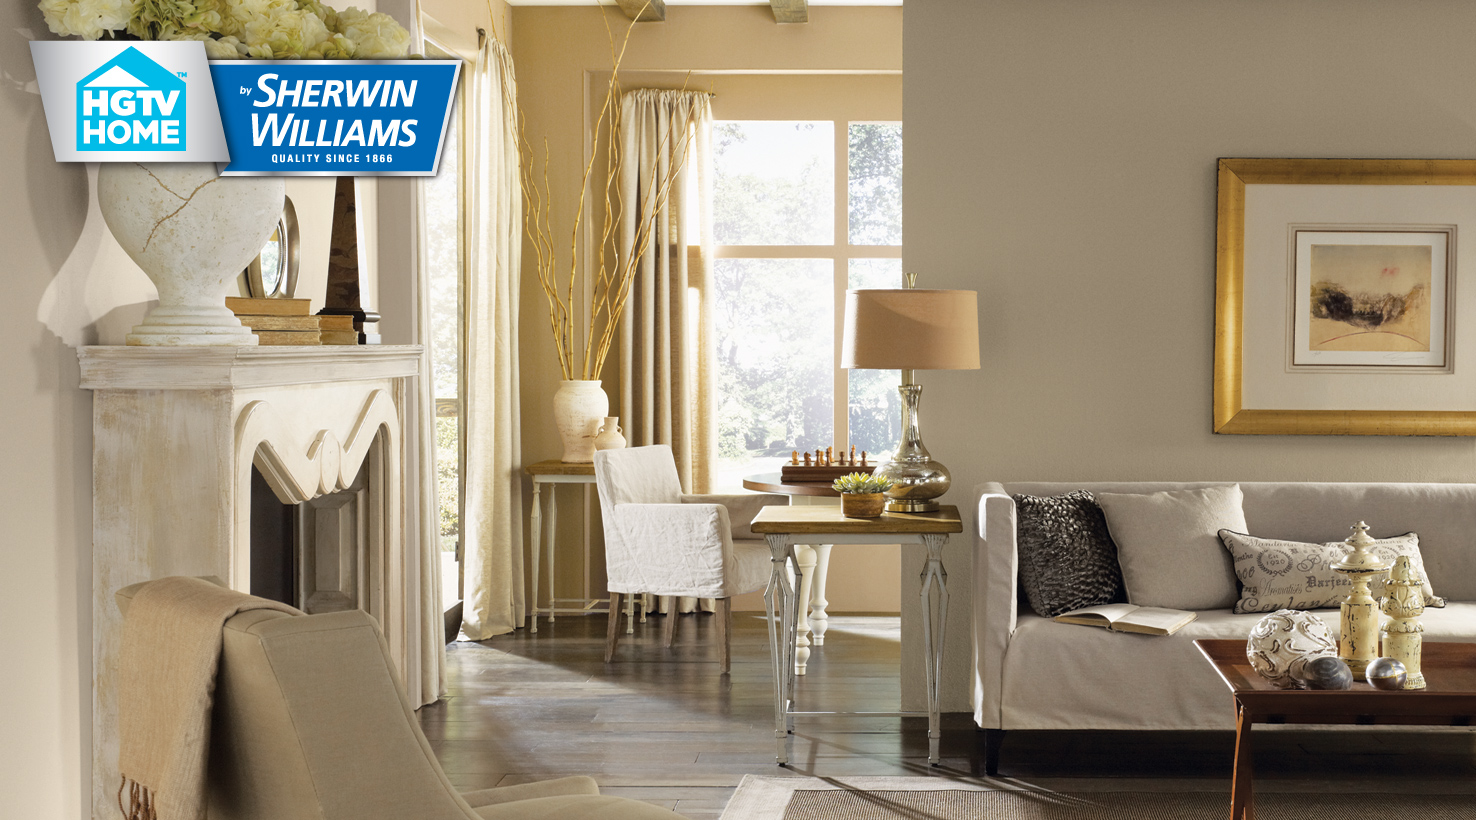 neutral nuance color palette hgtv home by sherwin williams. Black Bedroom Furniture Sets. Home Design Ideas